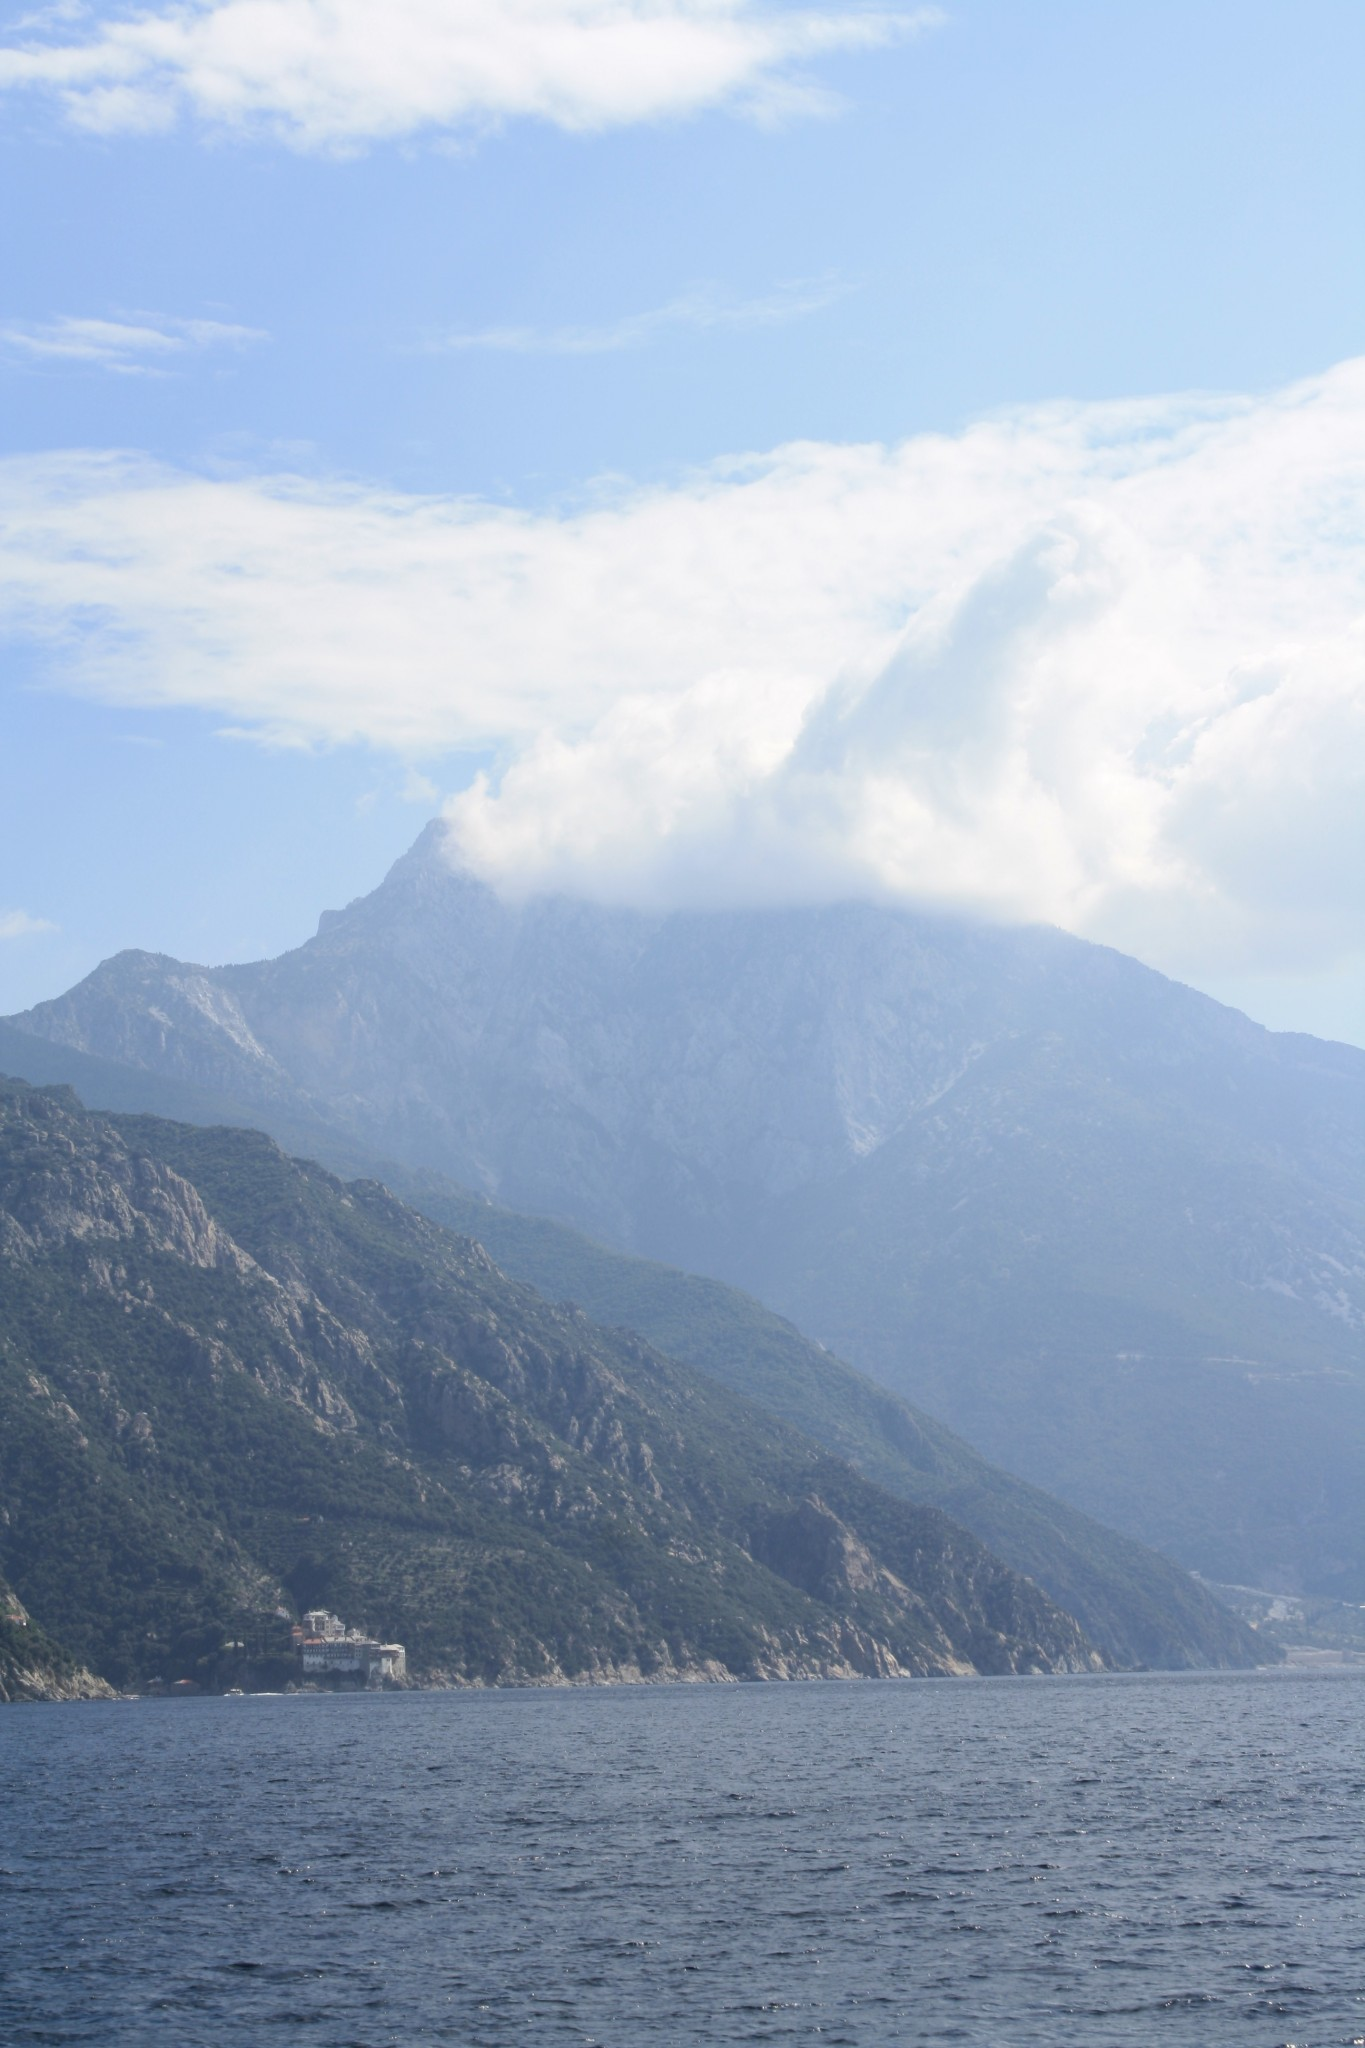 The Holiest Man Mountain in Greece